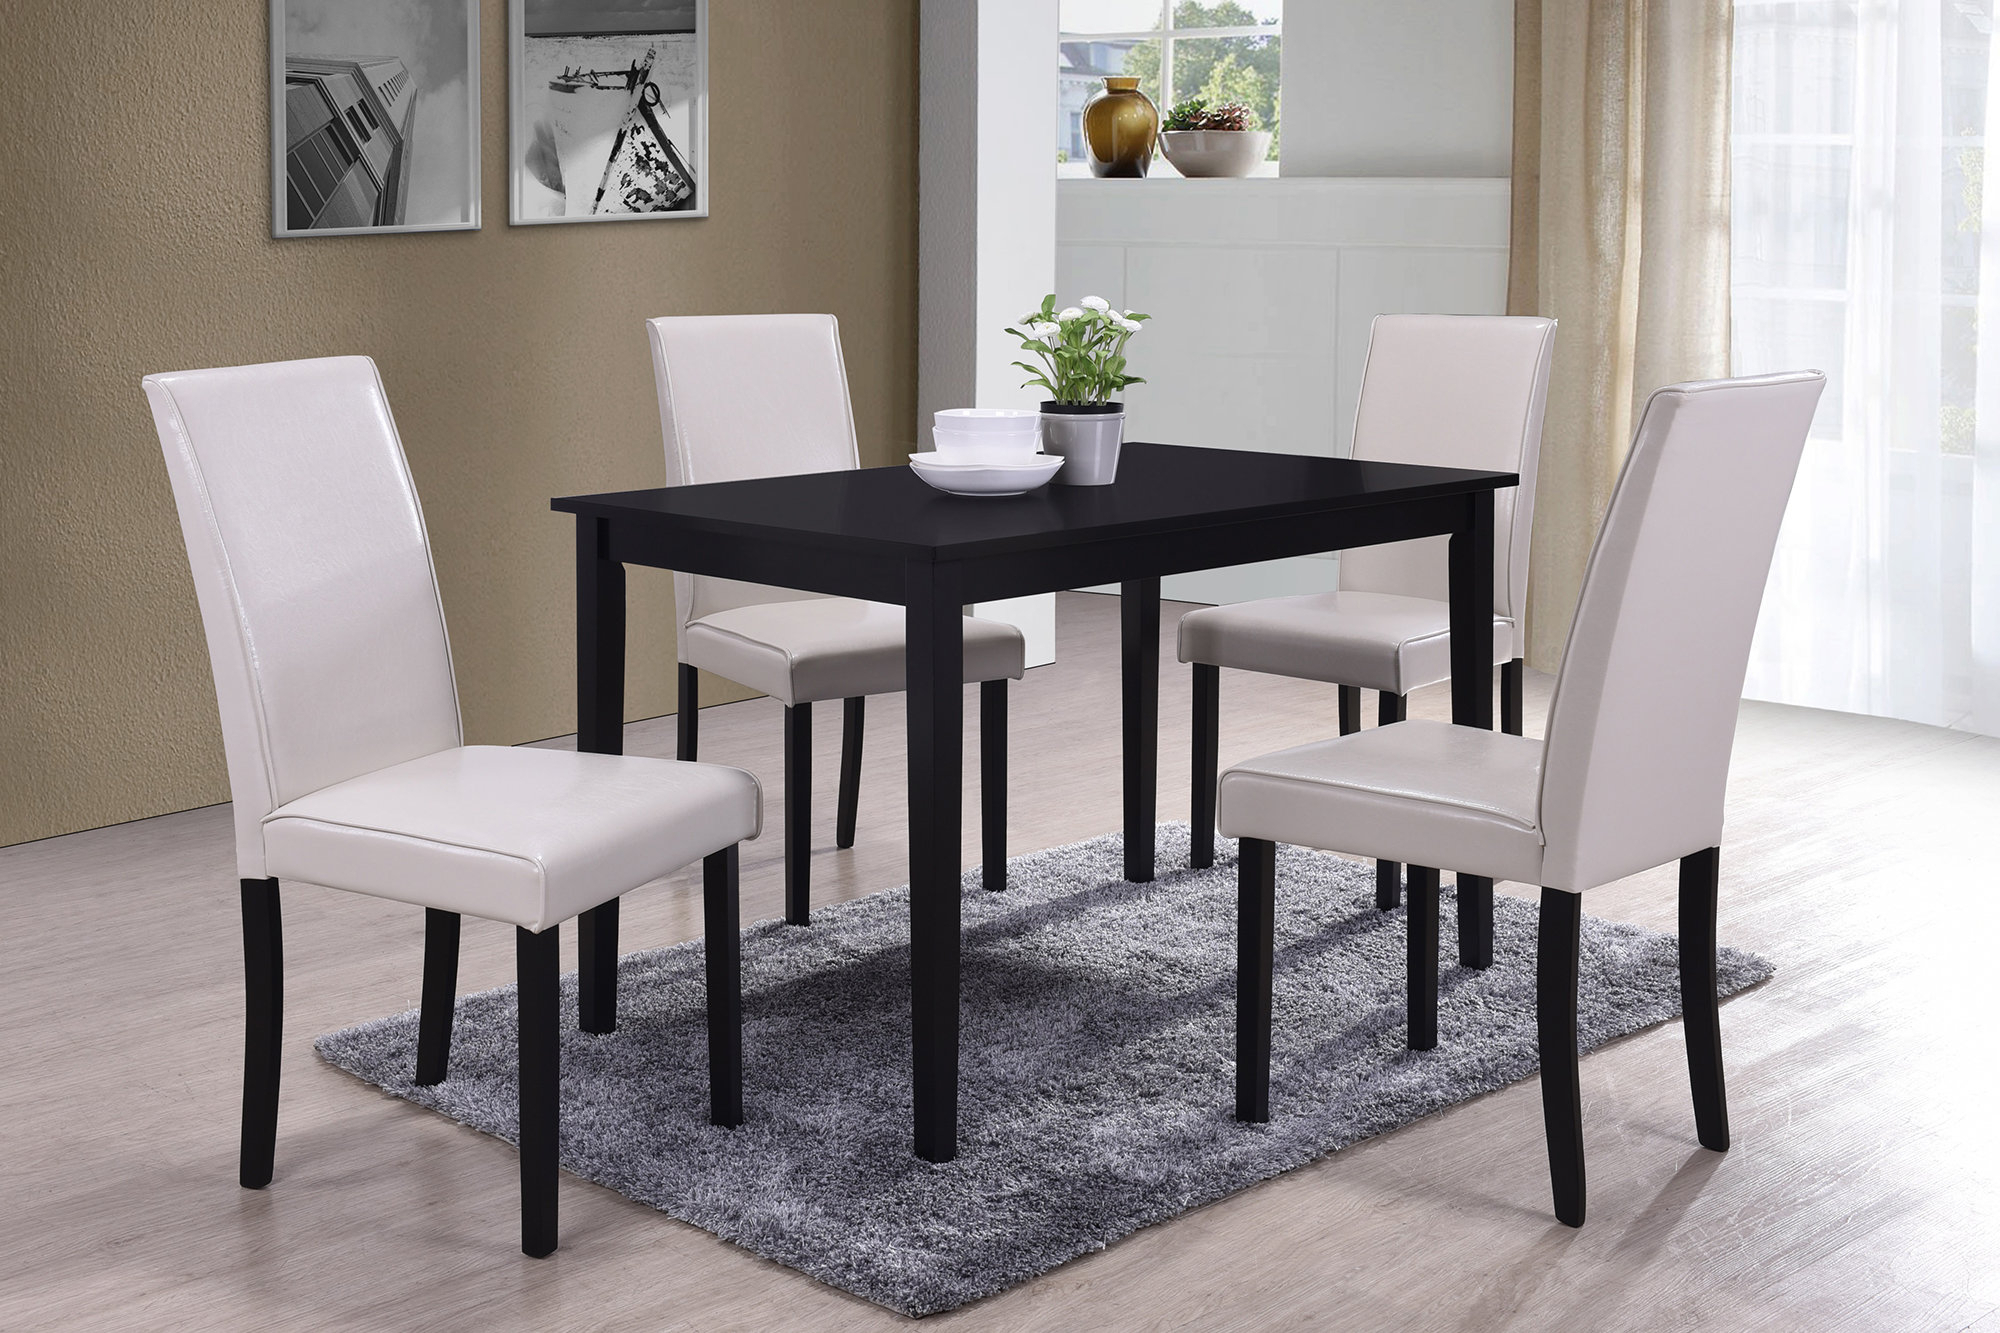 Macneil 5 Piece Dining Set Throughout Most Up To Date Noyes 5 Piece Dining Sets (View 5 of 20)